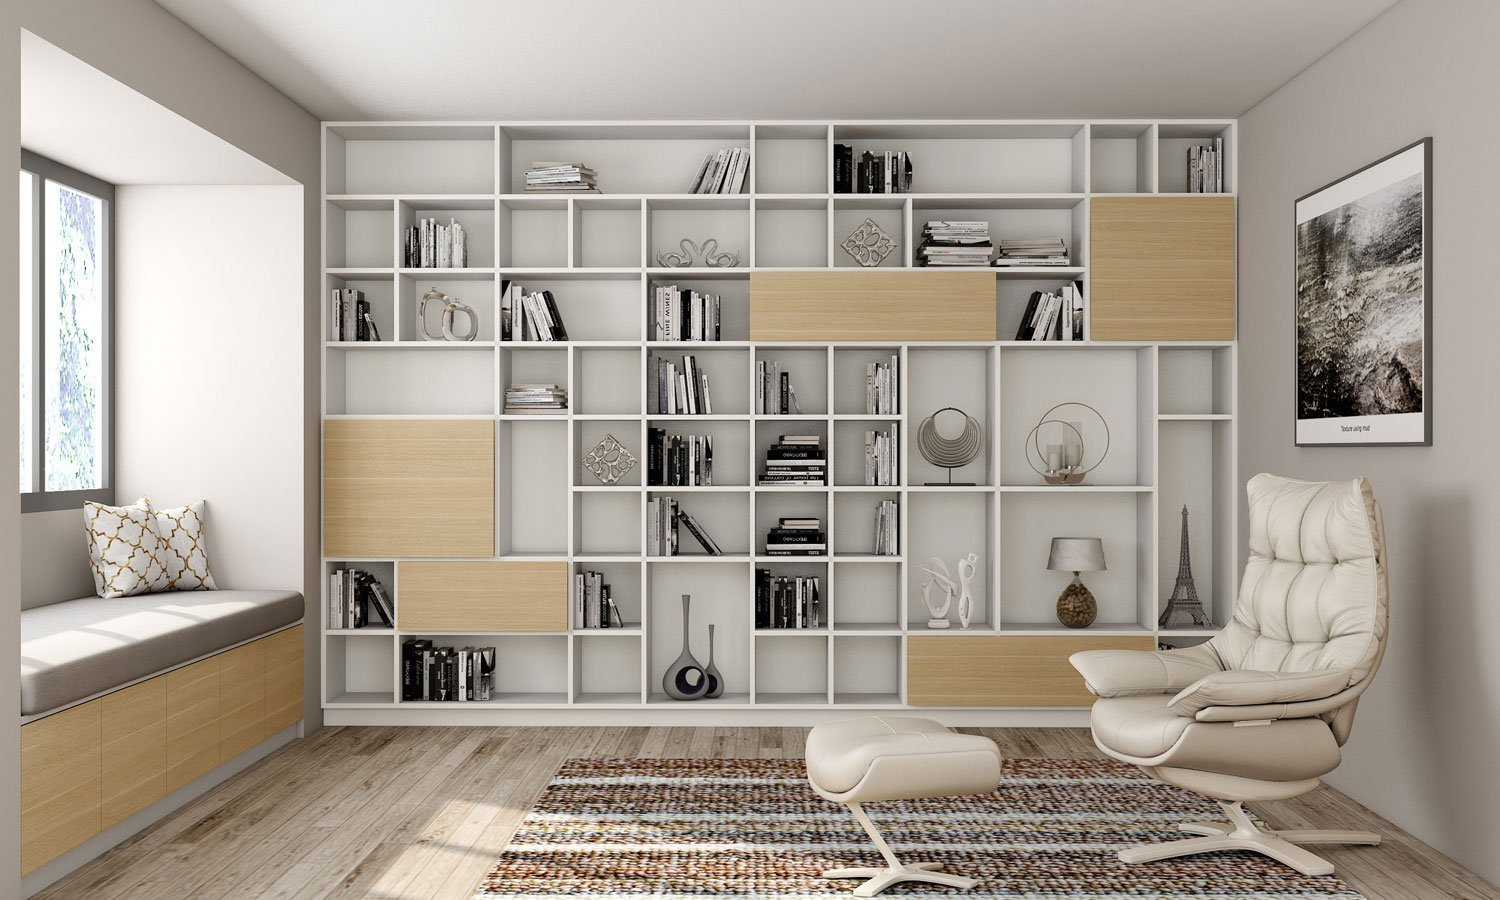 Book shelving for Library area in woodgrain and white finish